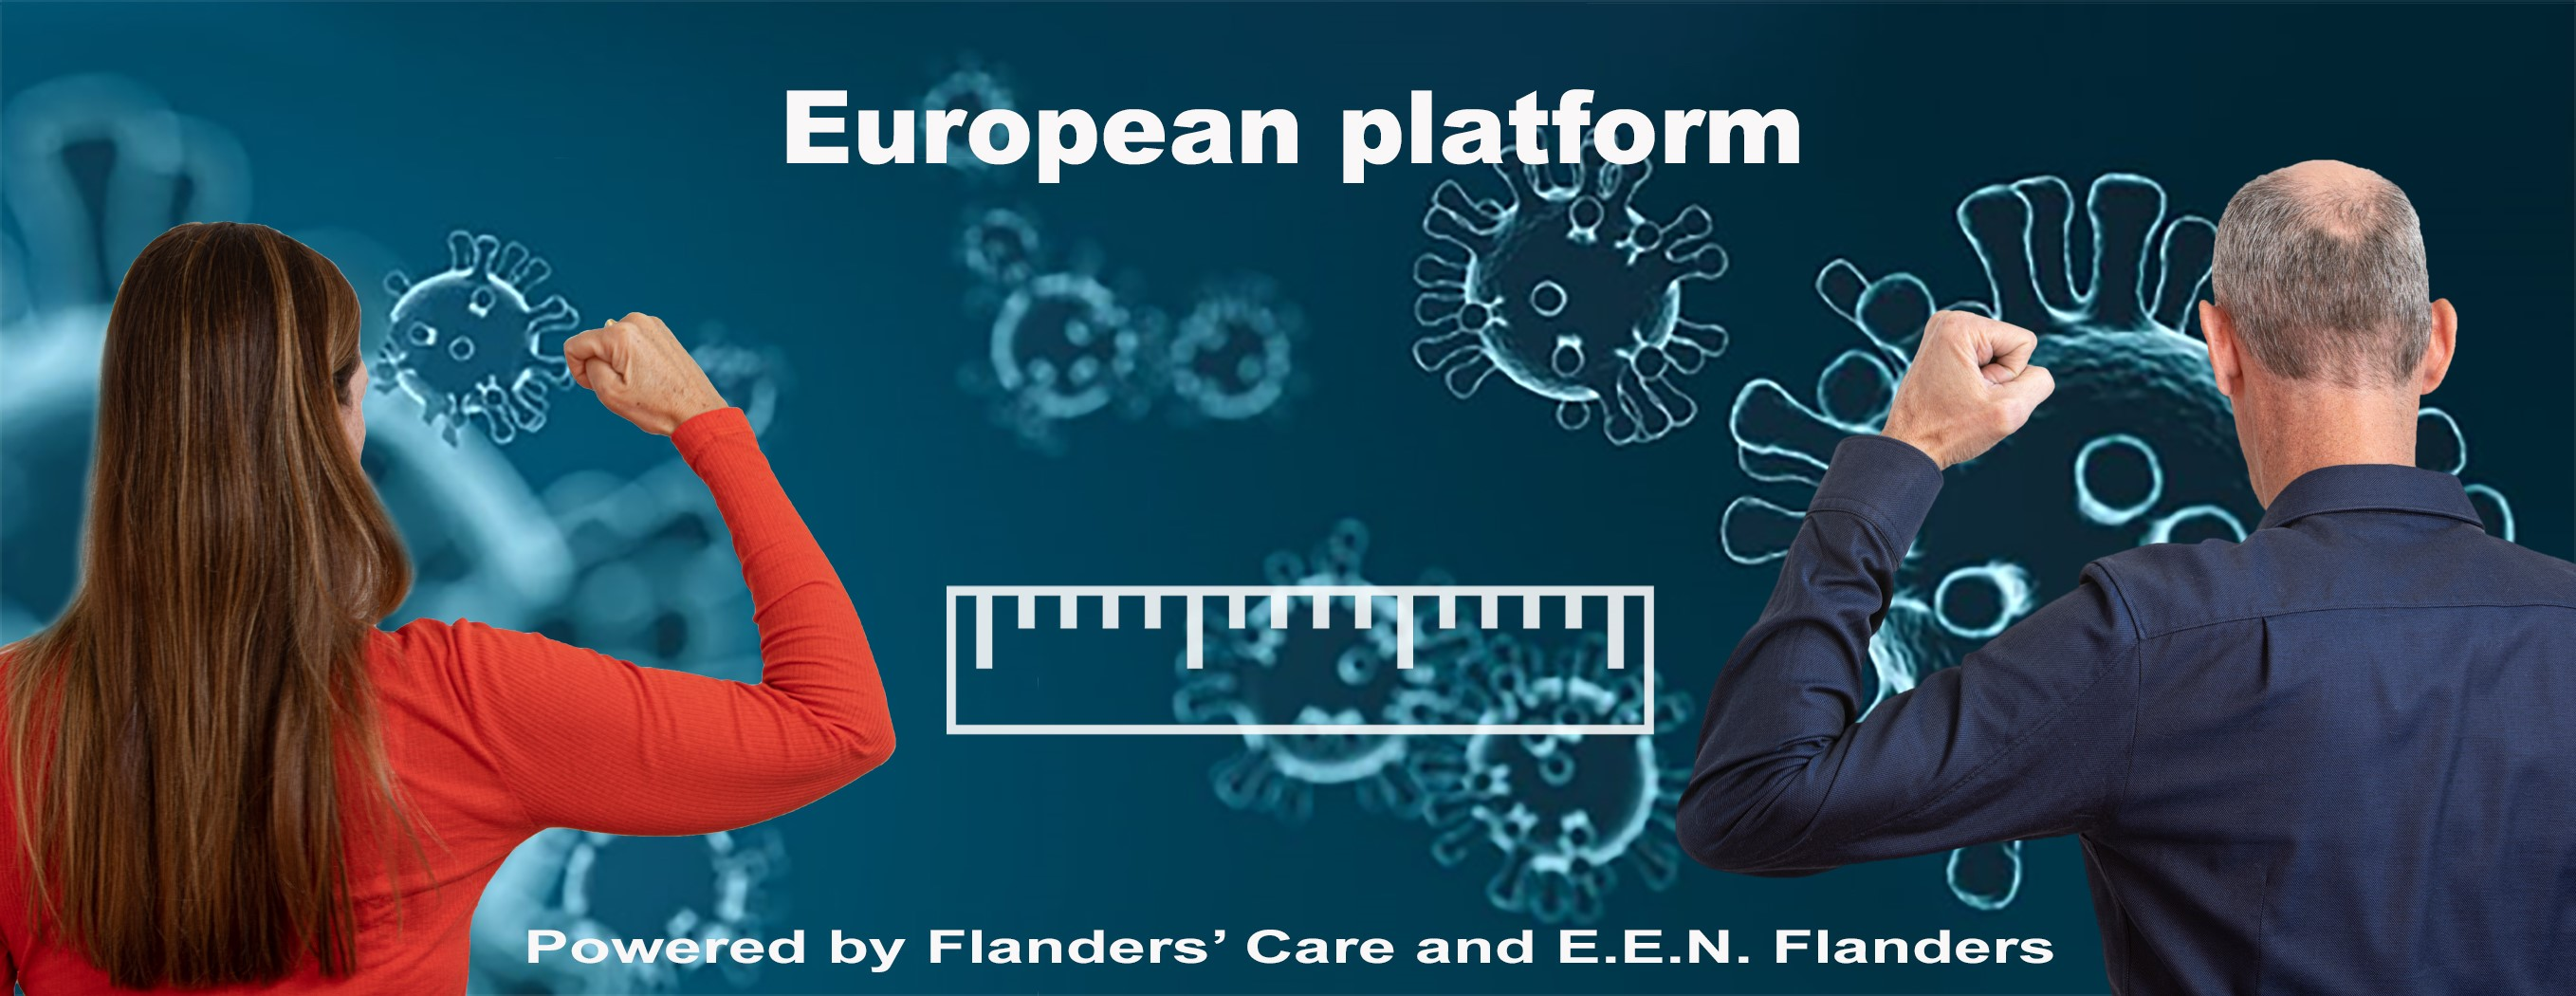 European Platform Care & Industry together against CORONA